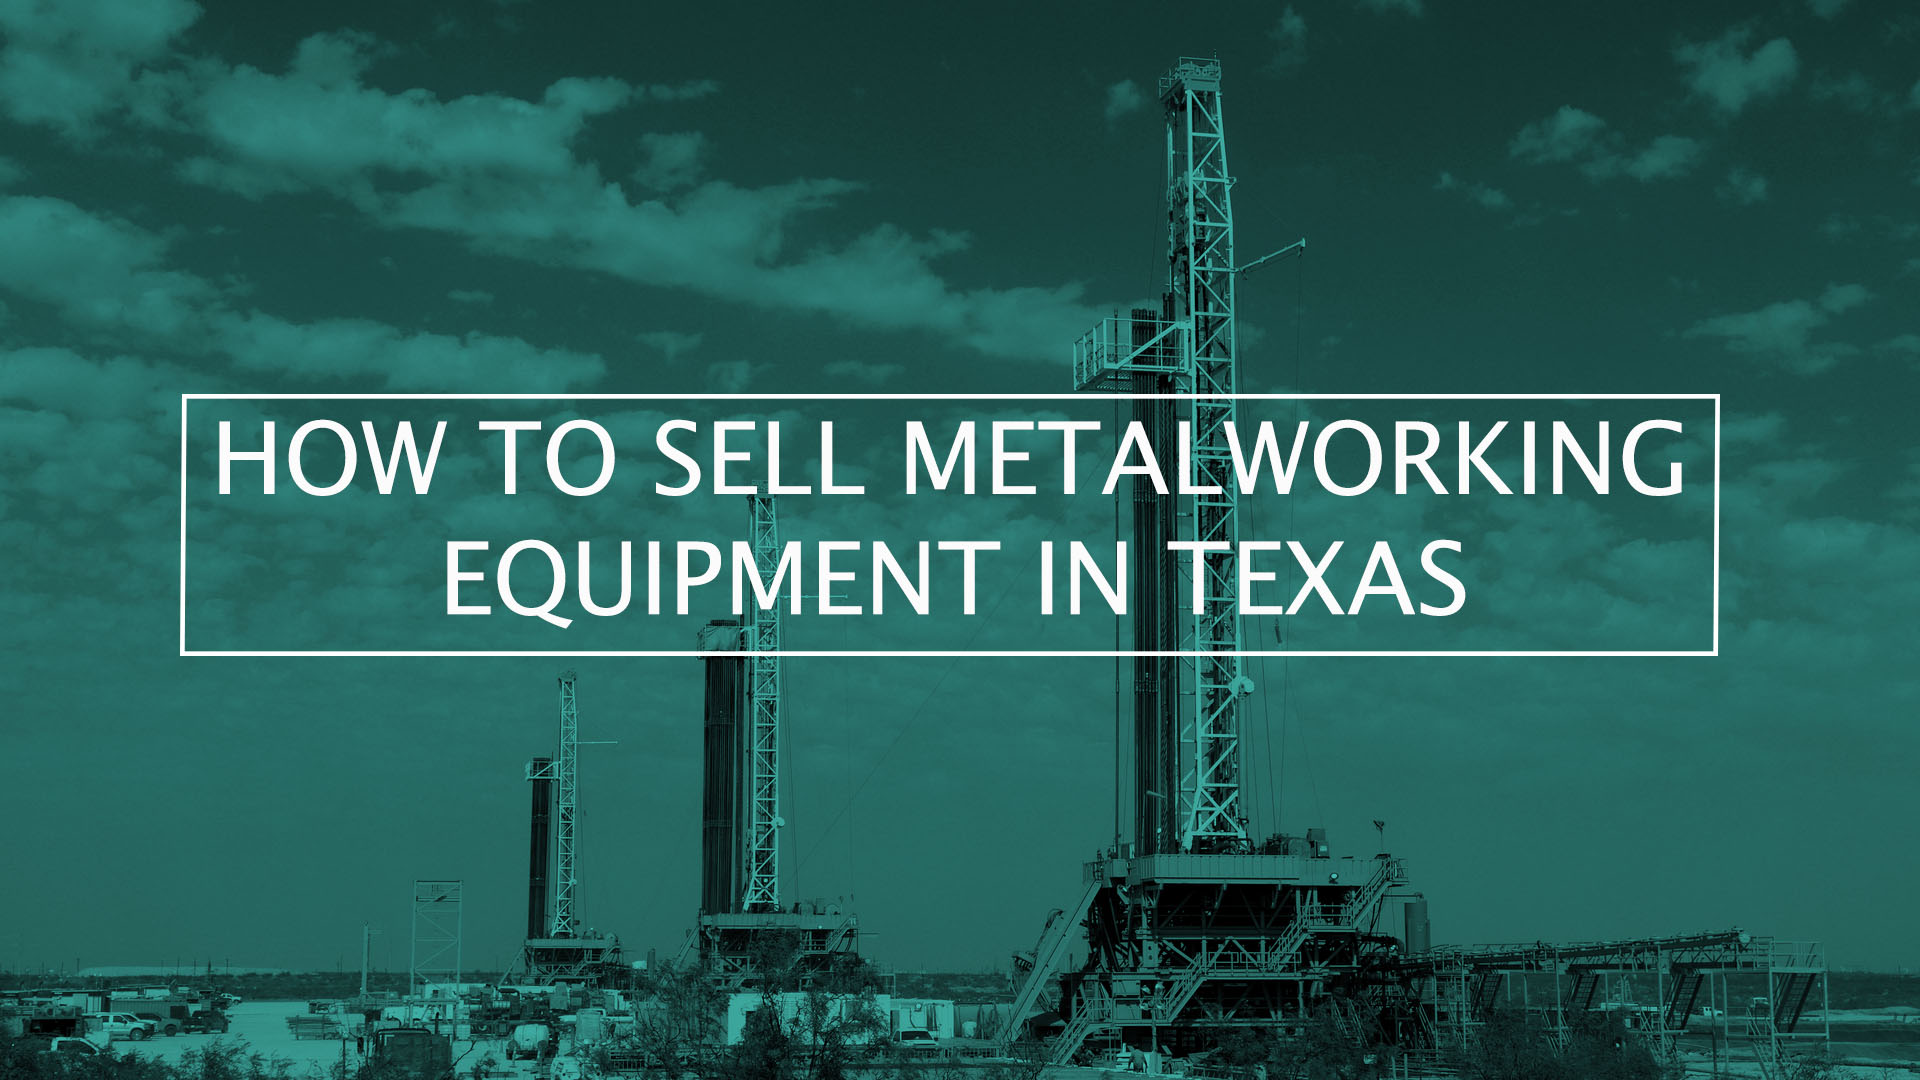 How to Sell Metalworking Equipment in Texas